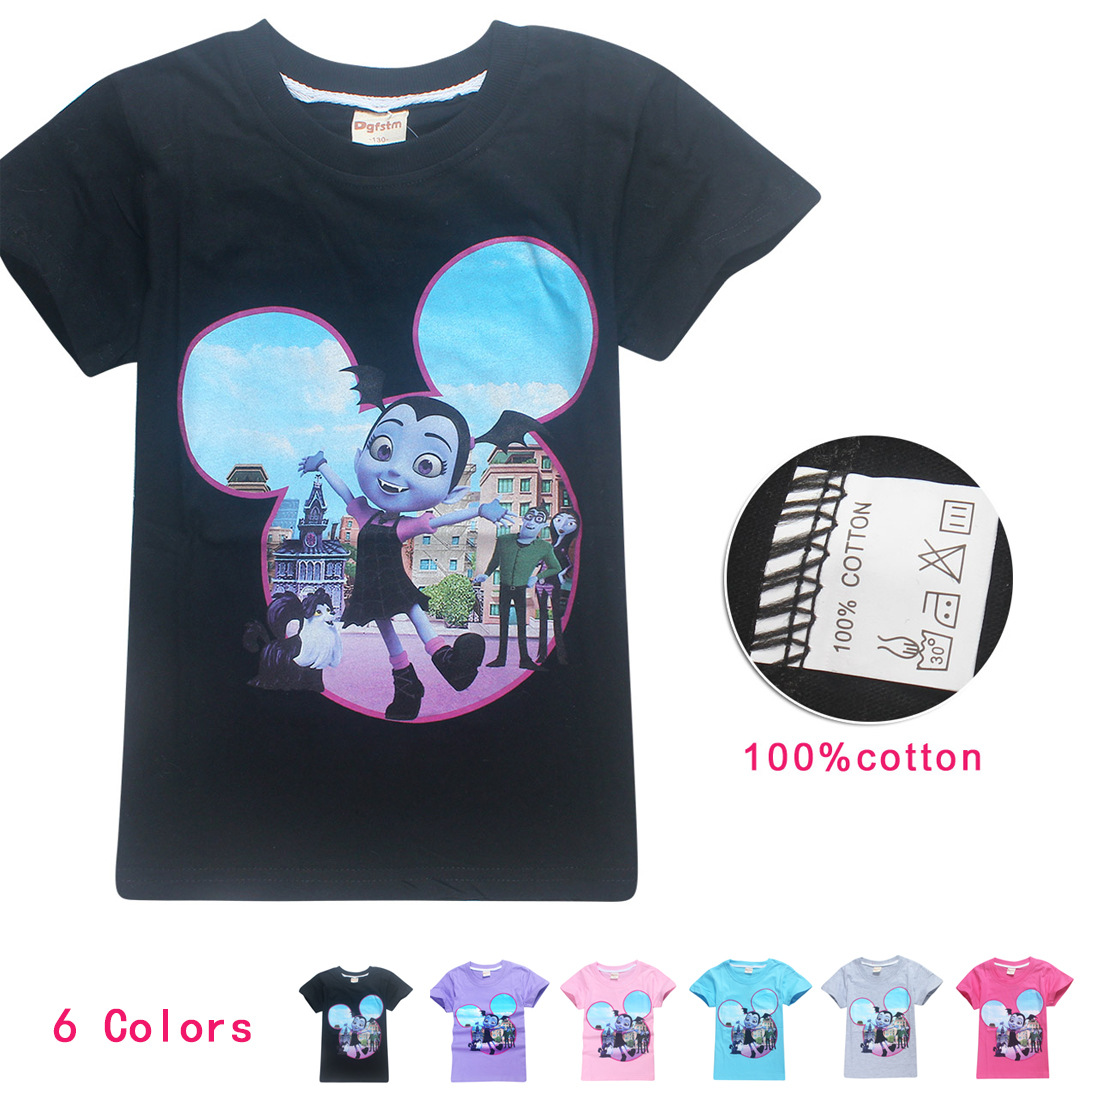 2018 summer Vampirina girls T-shirt boys and girls Bobo Choses cartoon moana trolls cute tops tees cotton Printed T - shirt